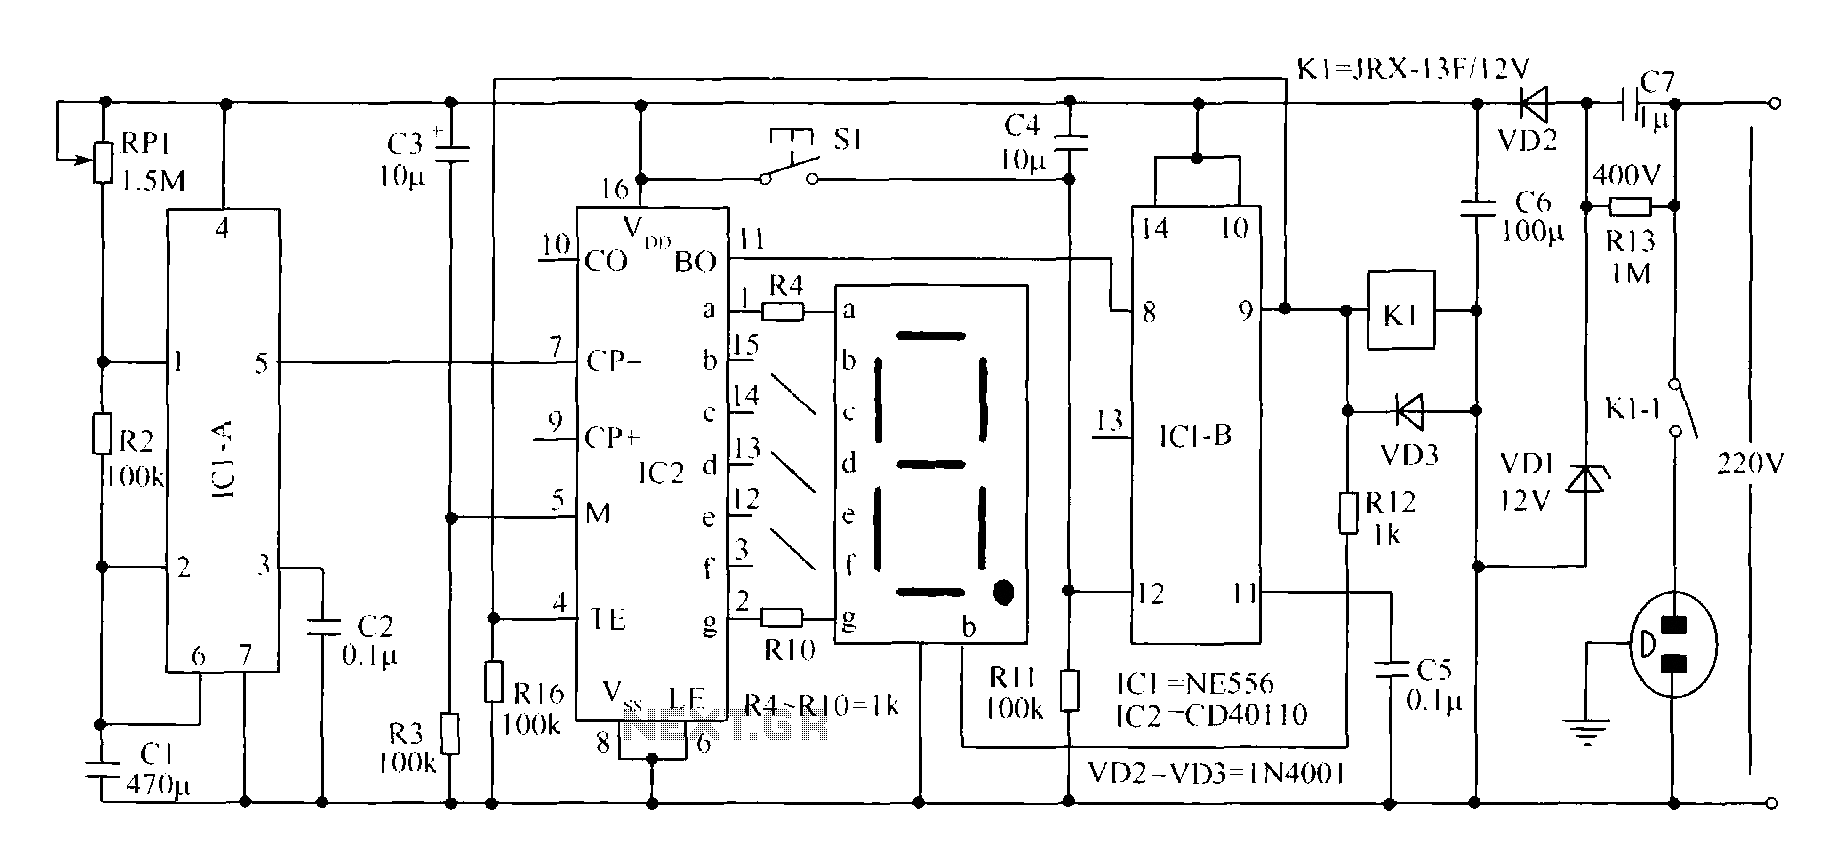 countdown timer circuit diagram info meter counter > timer circuits > novel circuit diagram of the wiring circuit